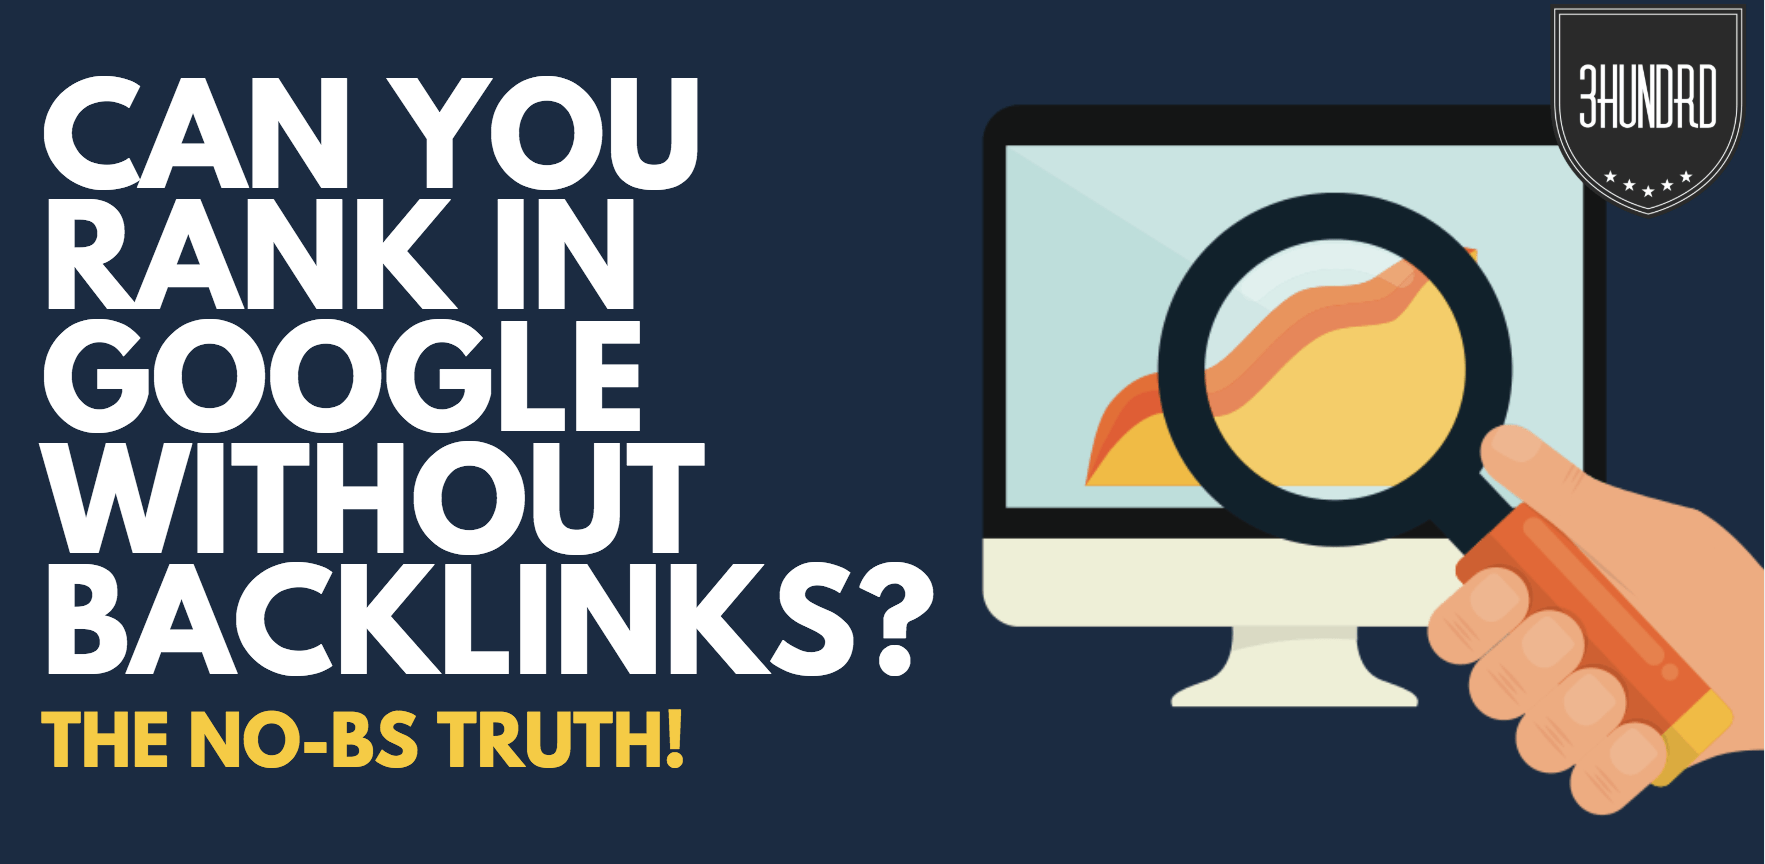 can you rank in google without backlinks